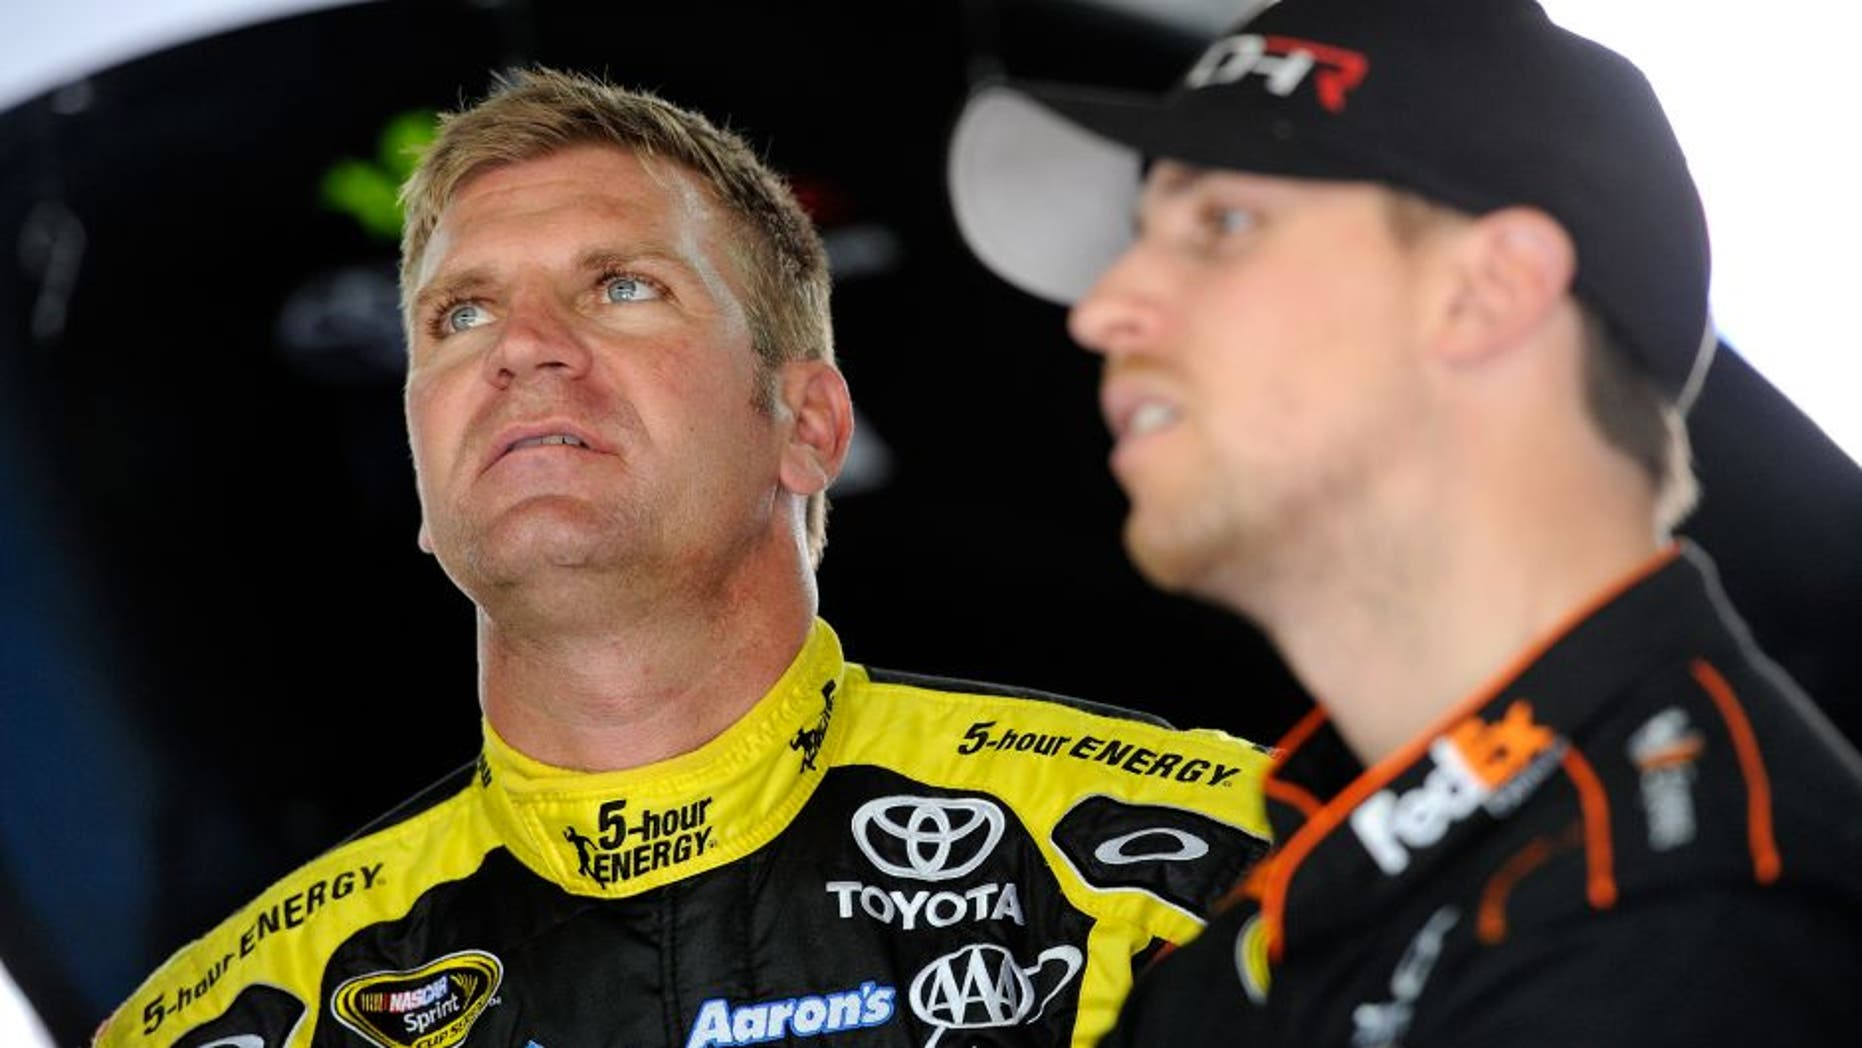 CHARLOTTE, NC - MARCH 11: Denny Hamlin(right), driver of the #11 FedEx Toyota, and Clint Bowyer, driver of the #15 5-Hour Energy Toyota, look over data in the garage area during the NASCAR Sprint Cup Series test at Charlotte Motor Speedway on March 11, 2015 in Charlotte, North Carolina. (Photo by Jared C. Tilton/NASCAR via Getty Images)